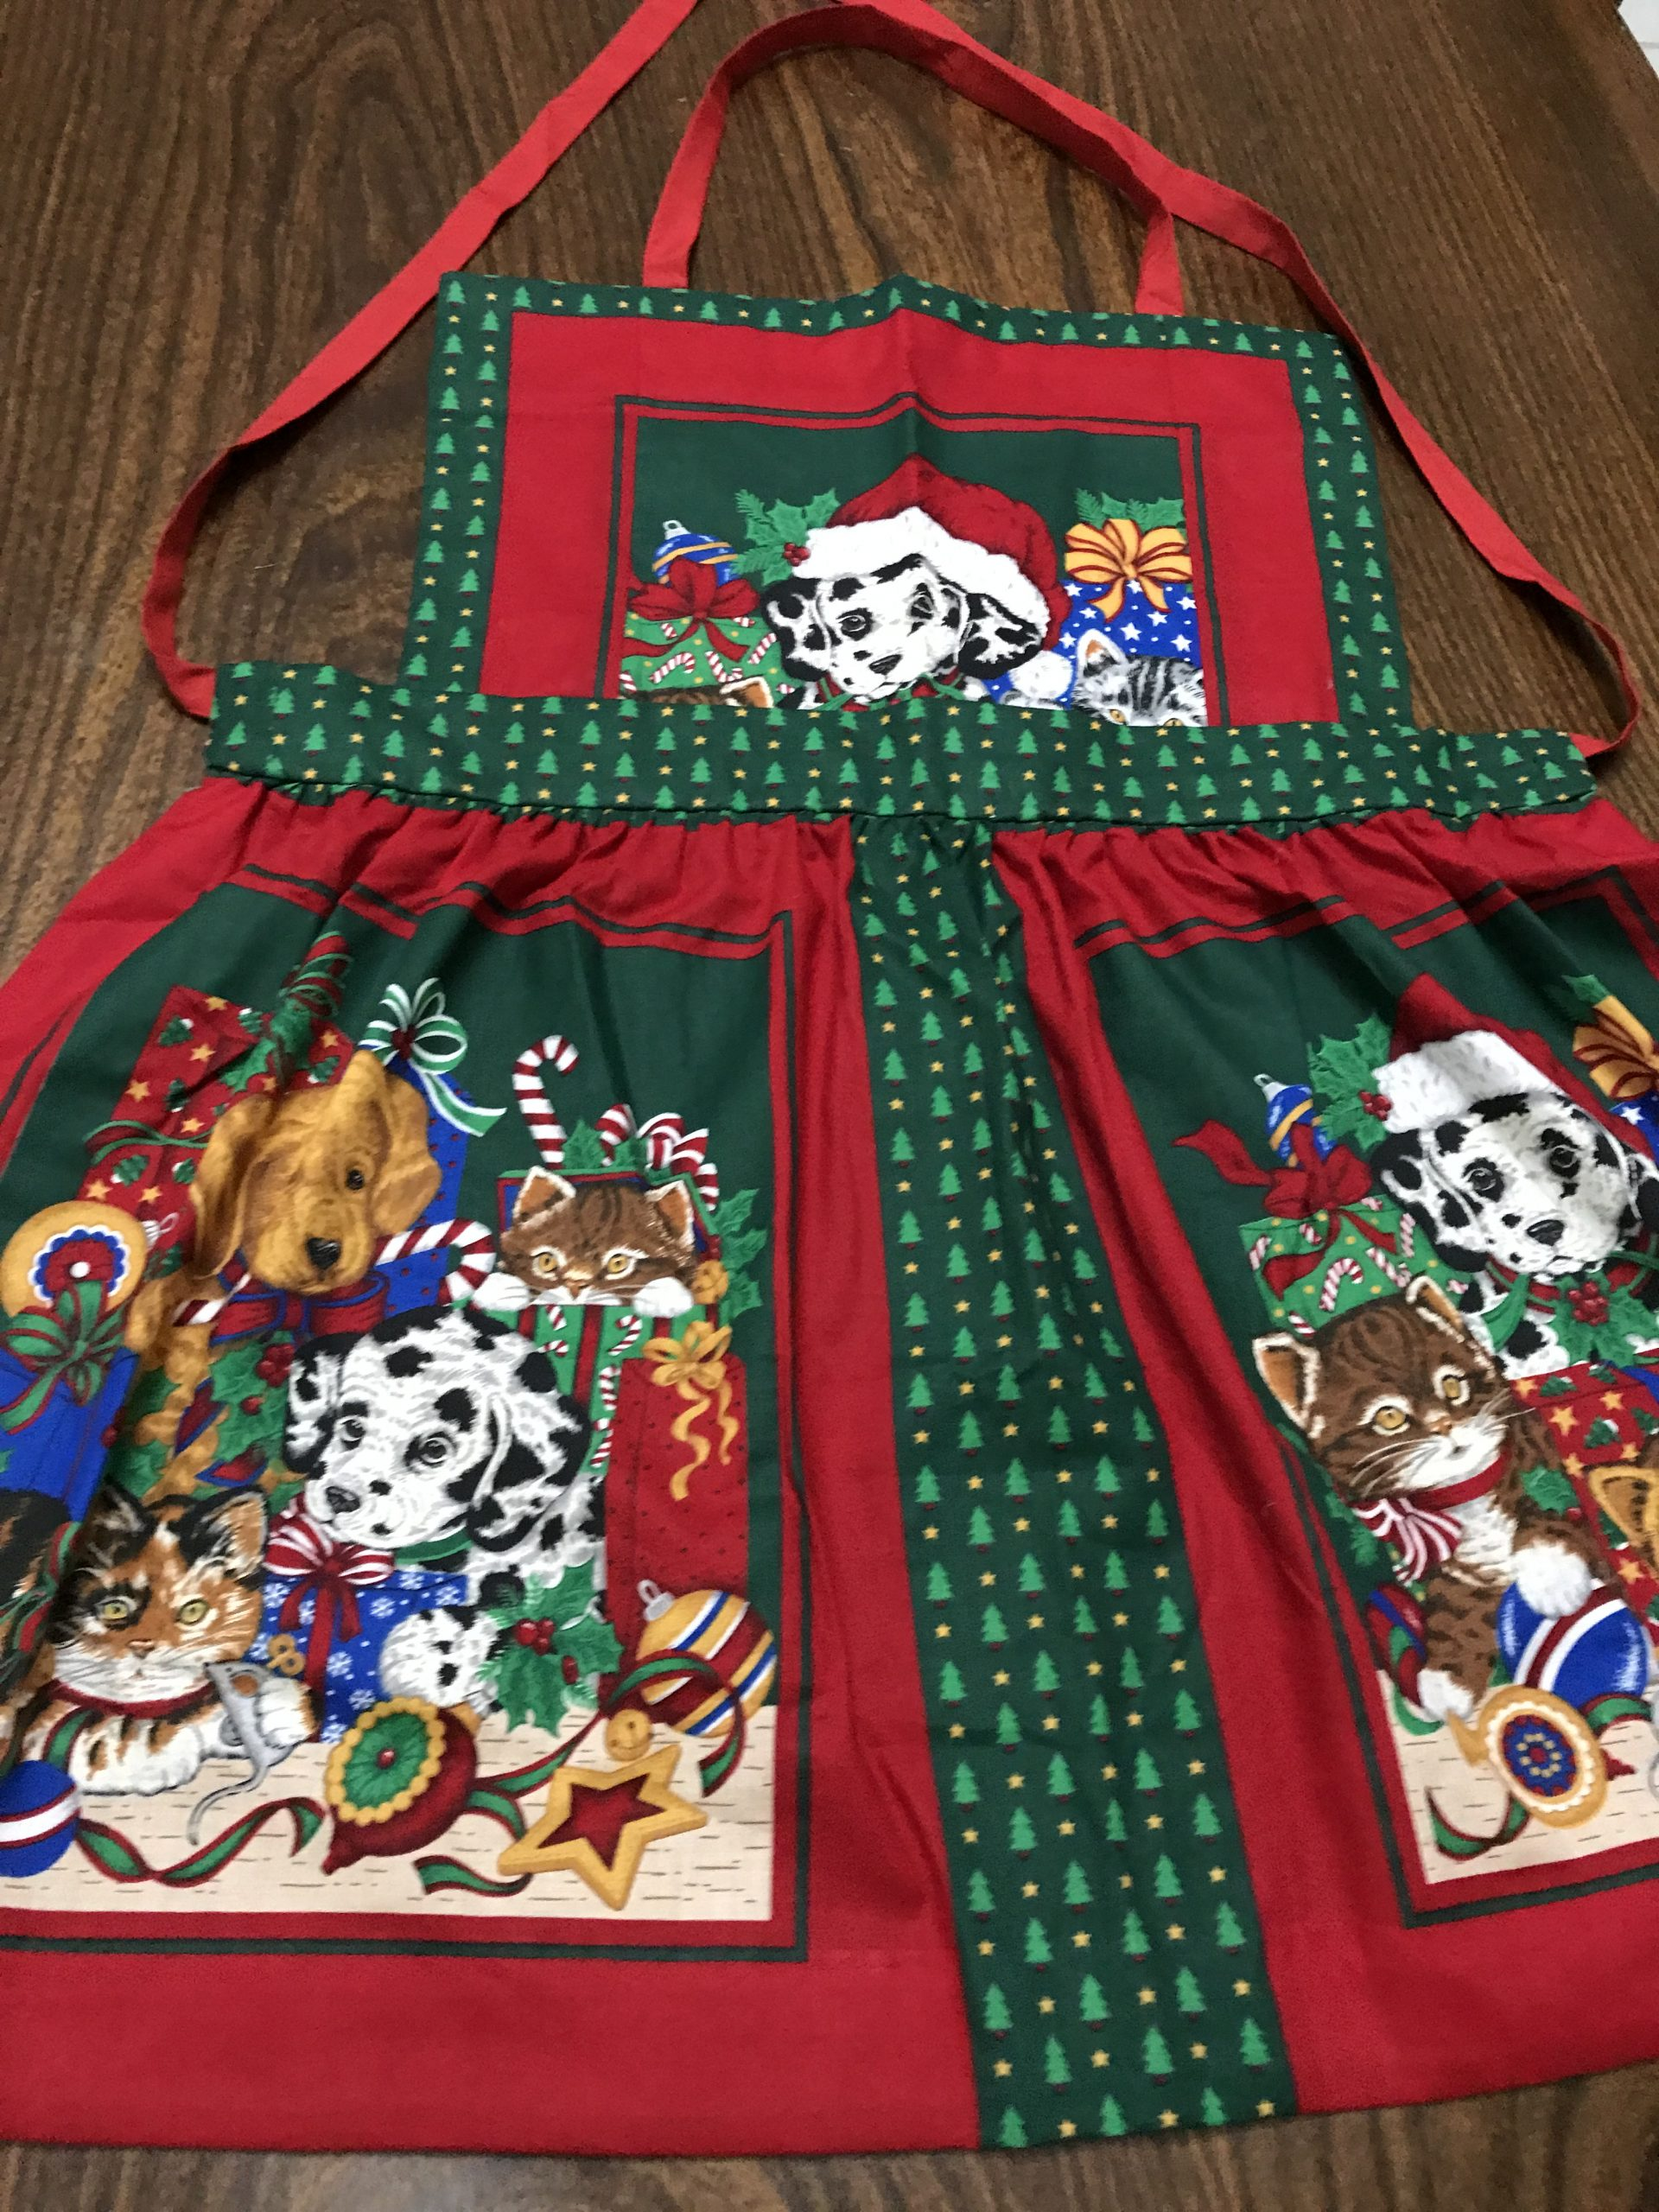 Dogs & Cats Apron